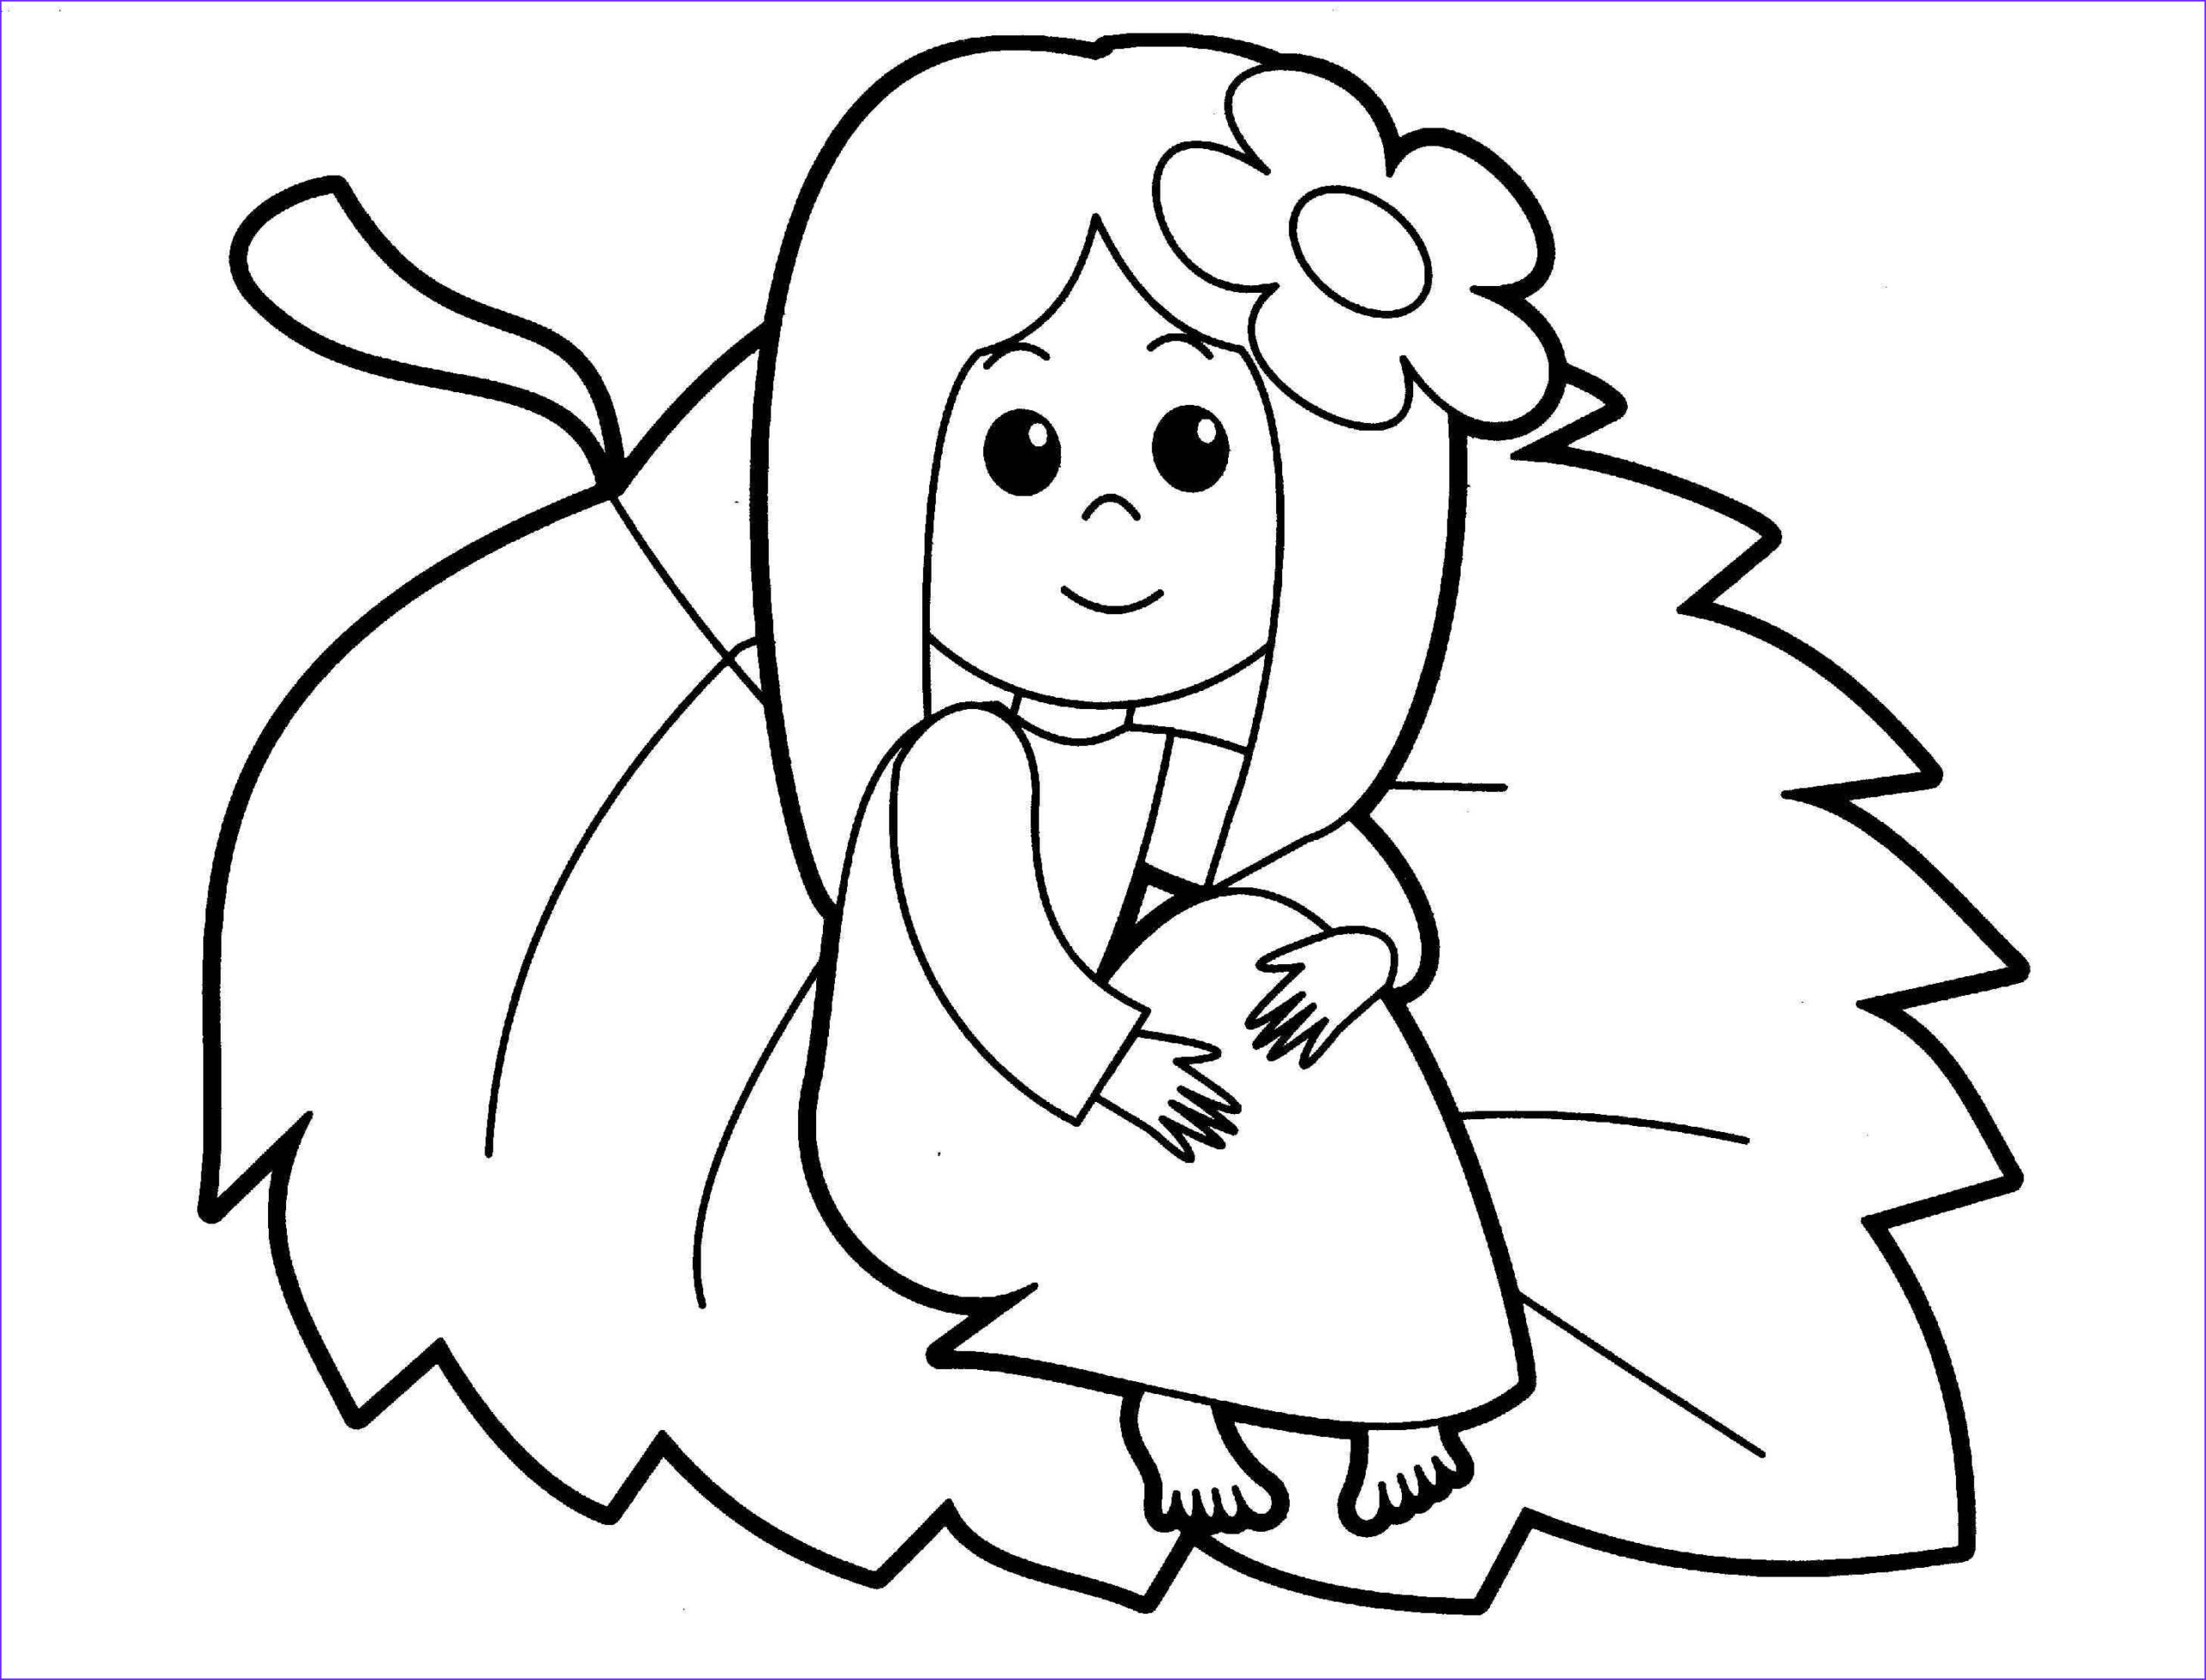 Coloring Pages for Babies Inspirational Image Free Printable Baby Coloring Pages for Kids